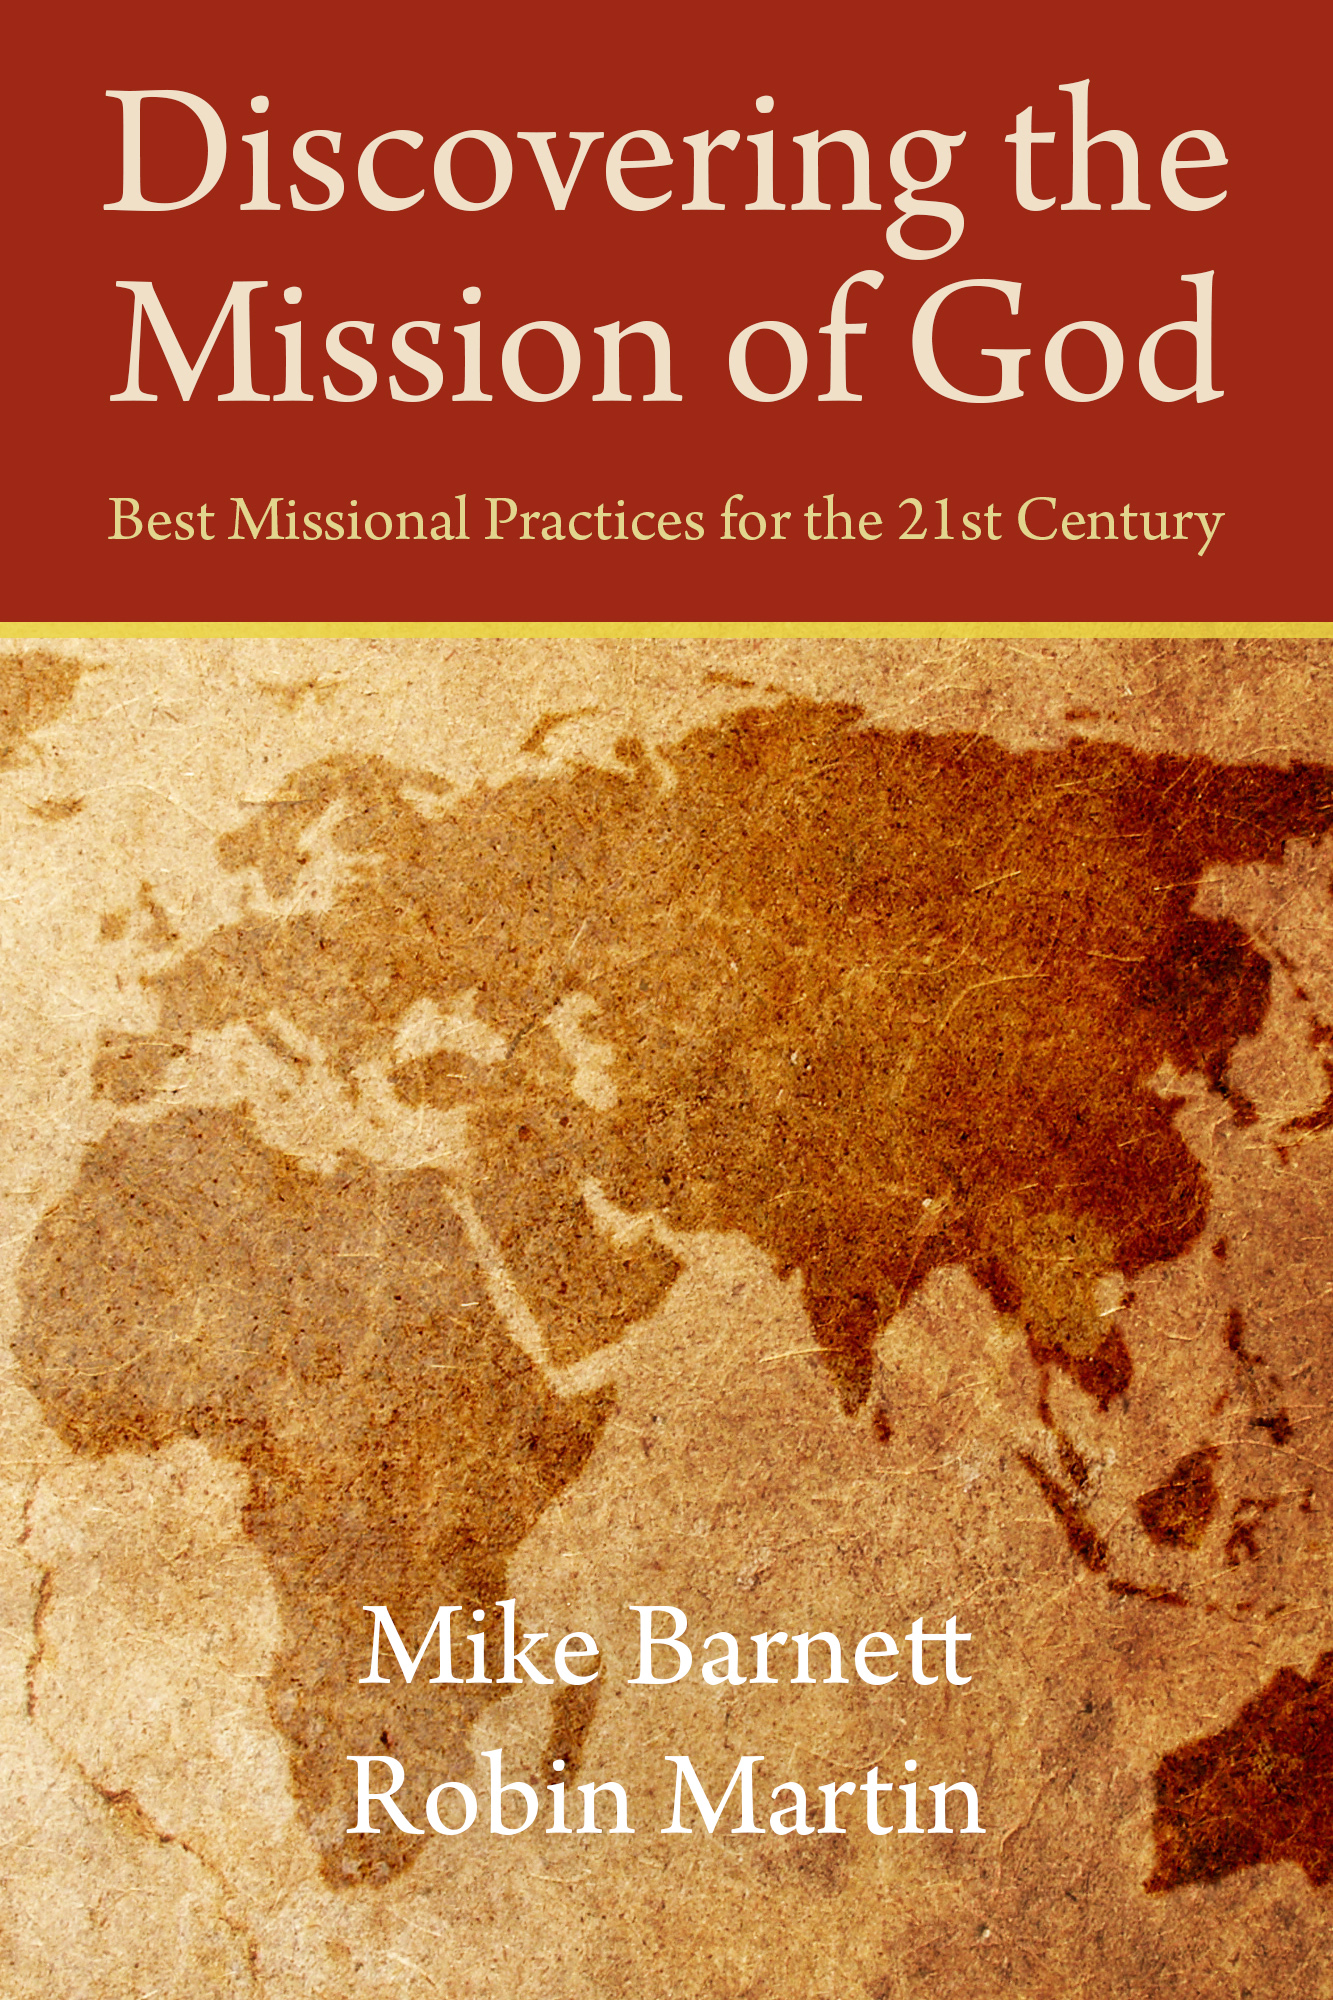 Discovering the Mission of God: Best Missional Practices for the 21st Century